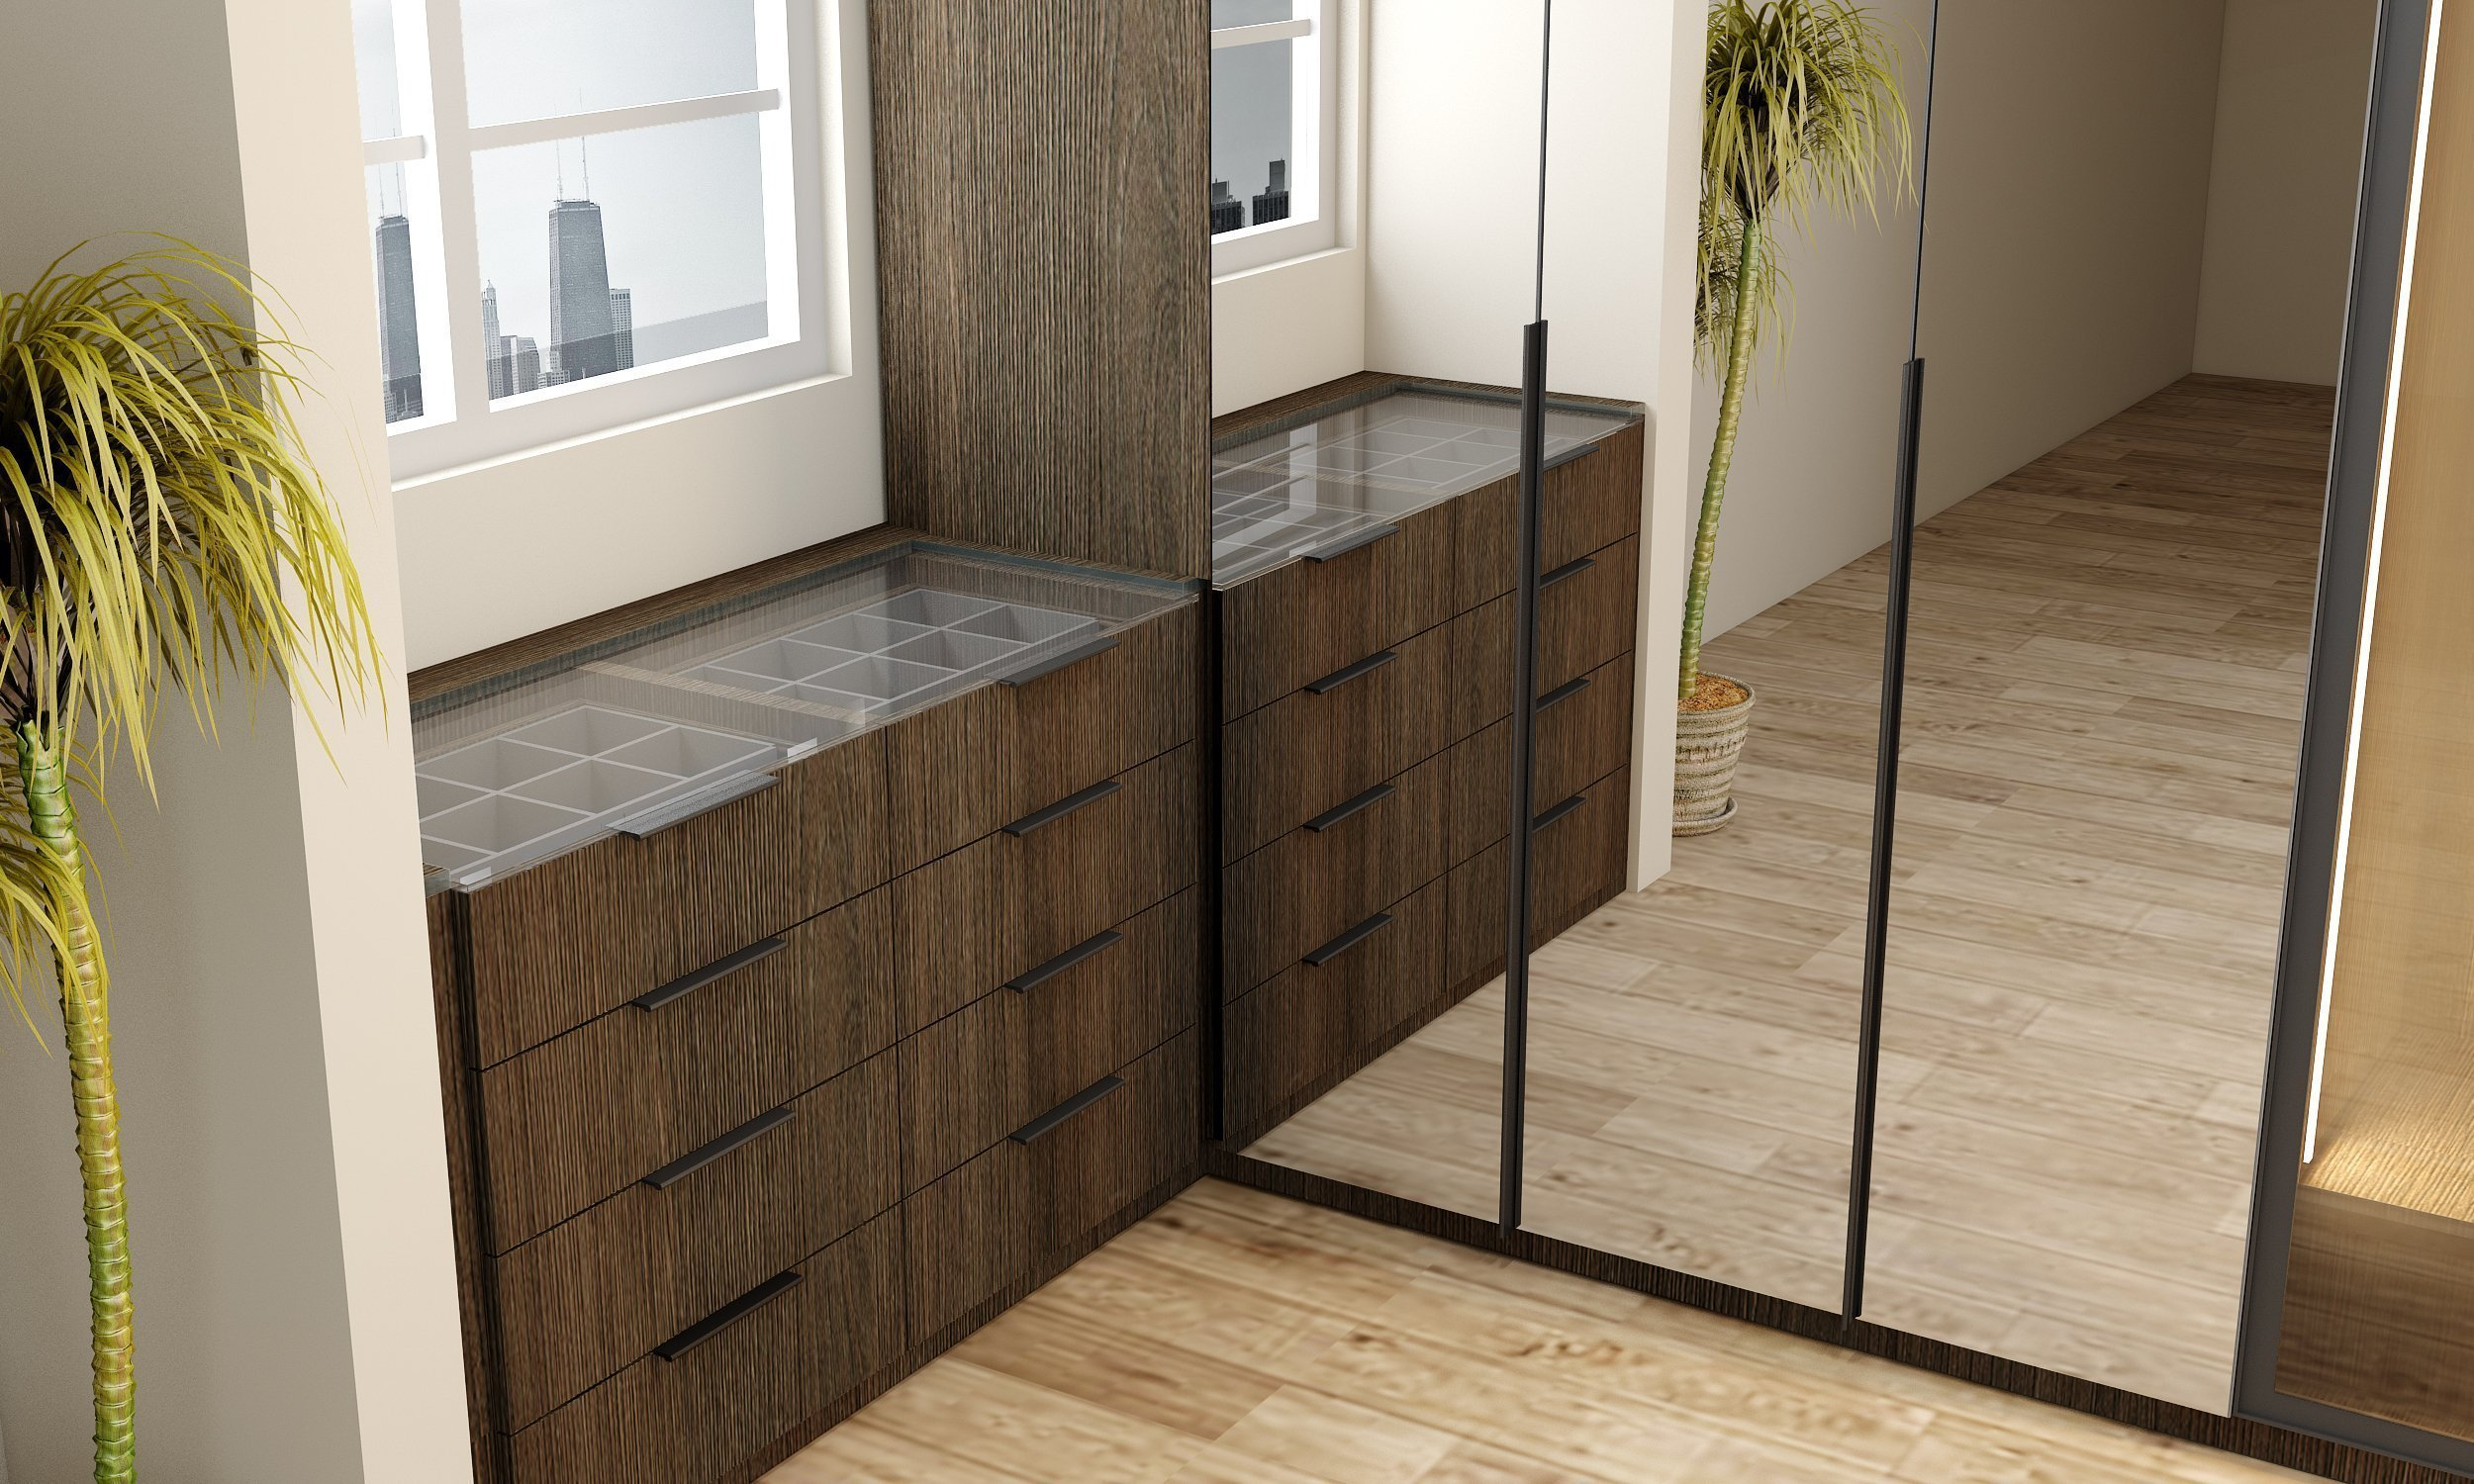 Linear Glass Wardrobe in Dark Wood Oak Finish With Mirrors & Chest of Drawers